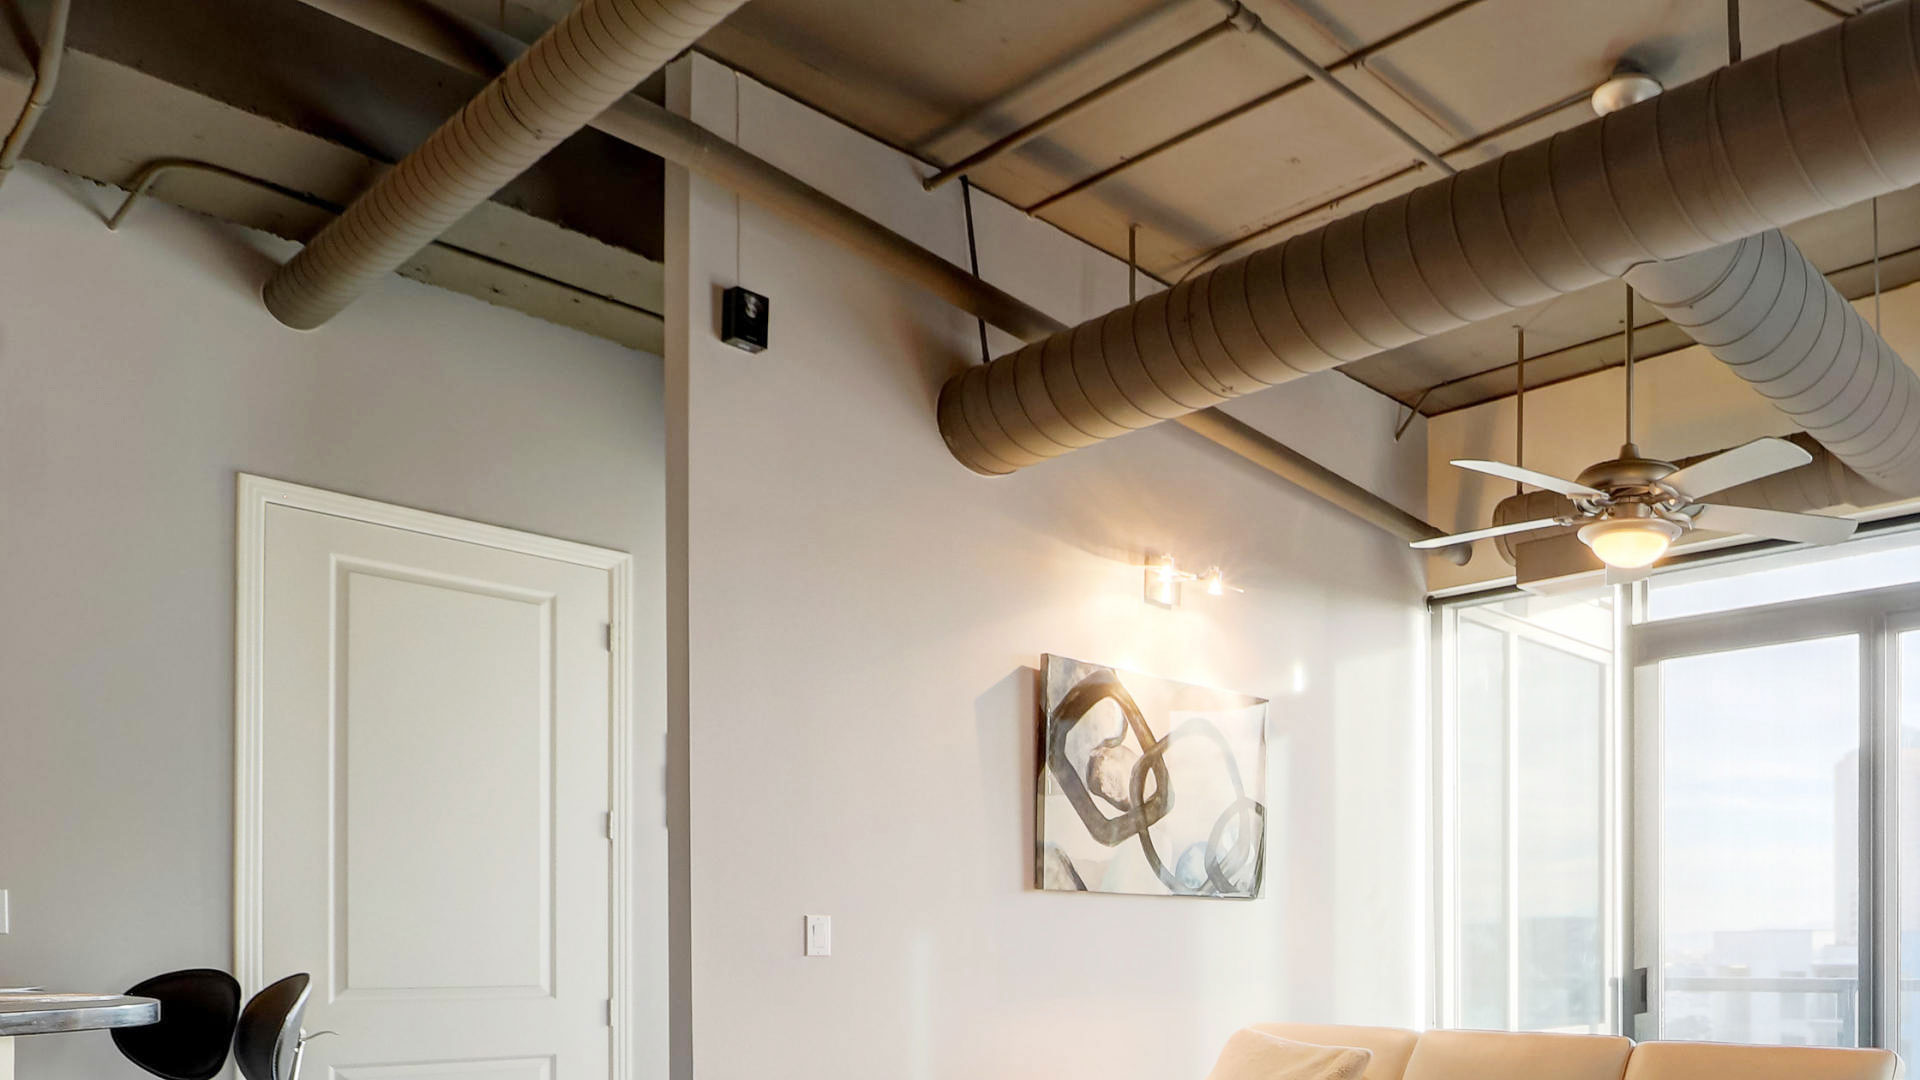 Best Air Duct Cleaning Company Santa Barbara |  S & R Air Duct Cleaning Services